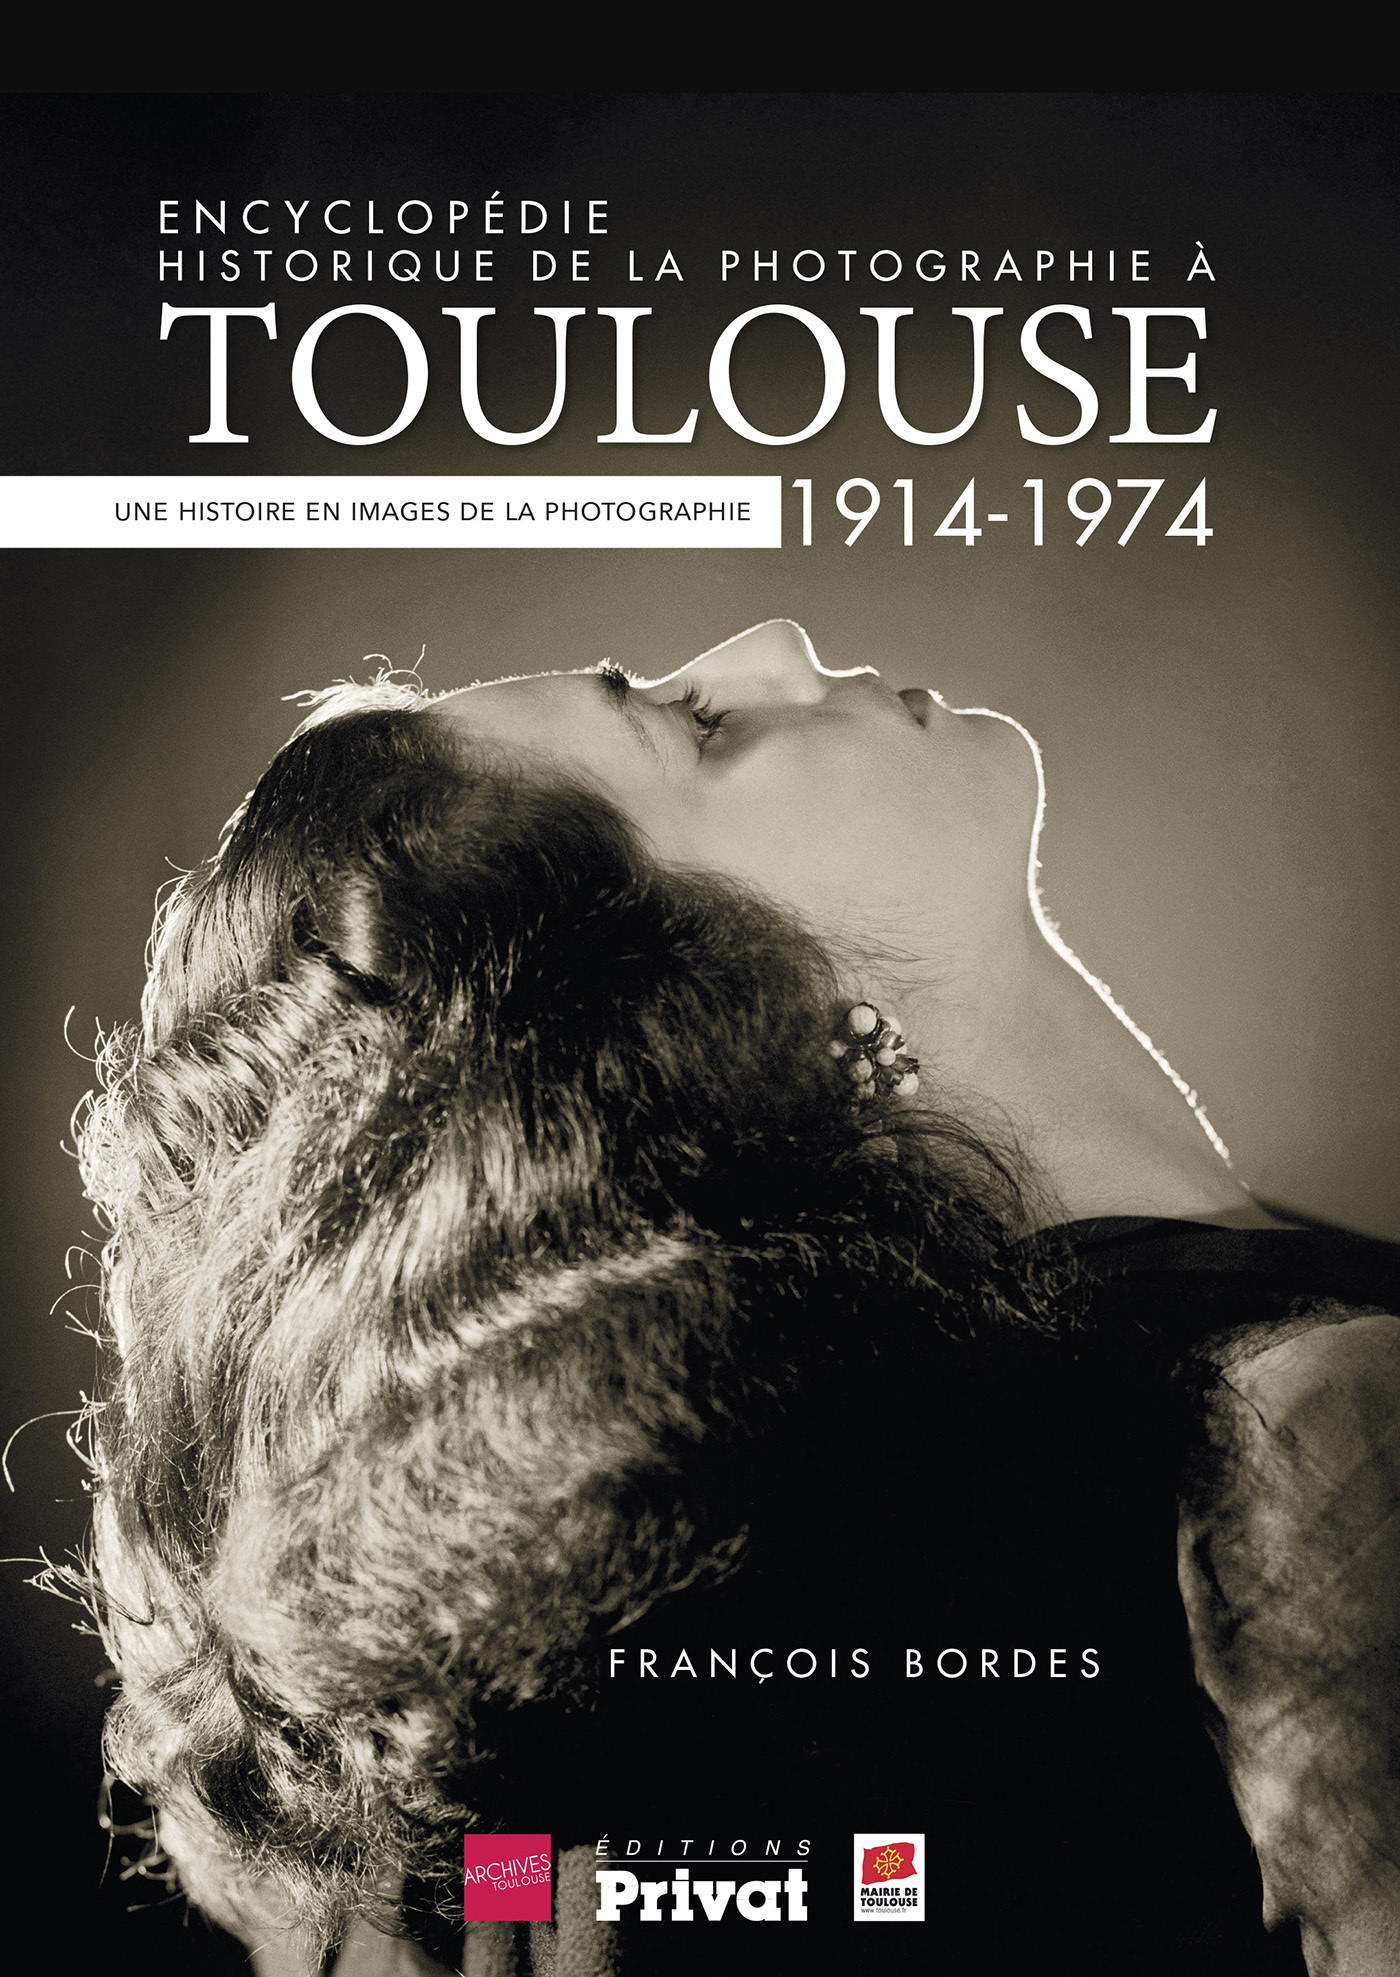 ENCYCLOPEDIE HISTORIQUE DE LA PHOTOGRAPHIE A TOULOUSE TOME 2